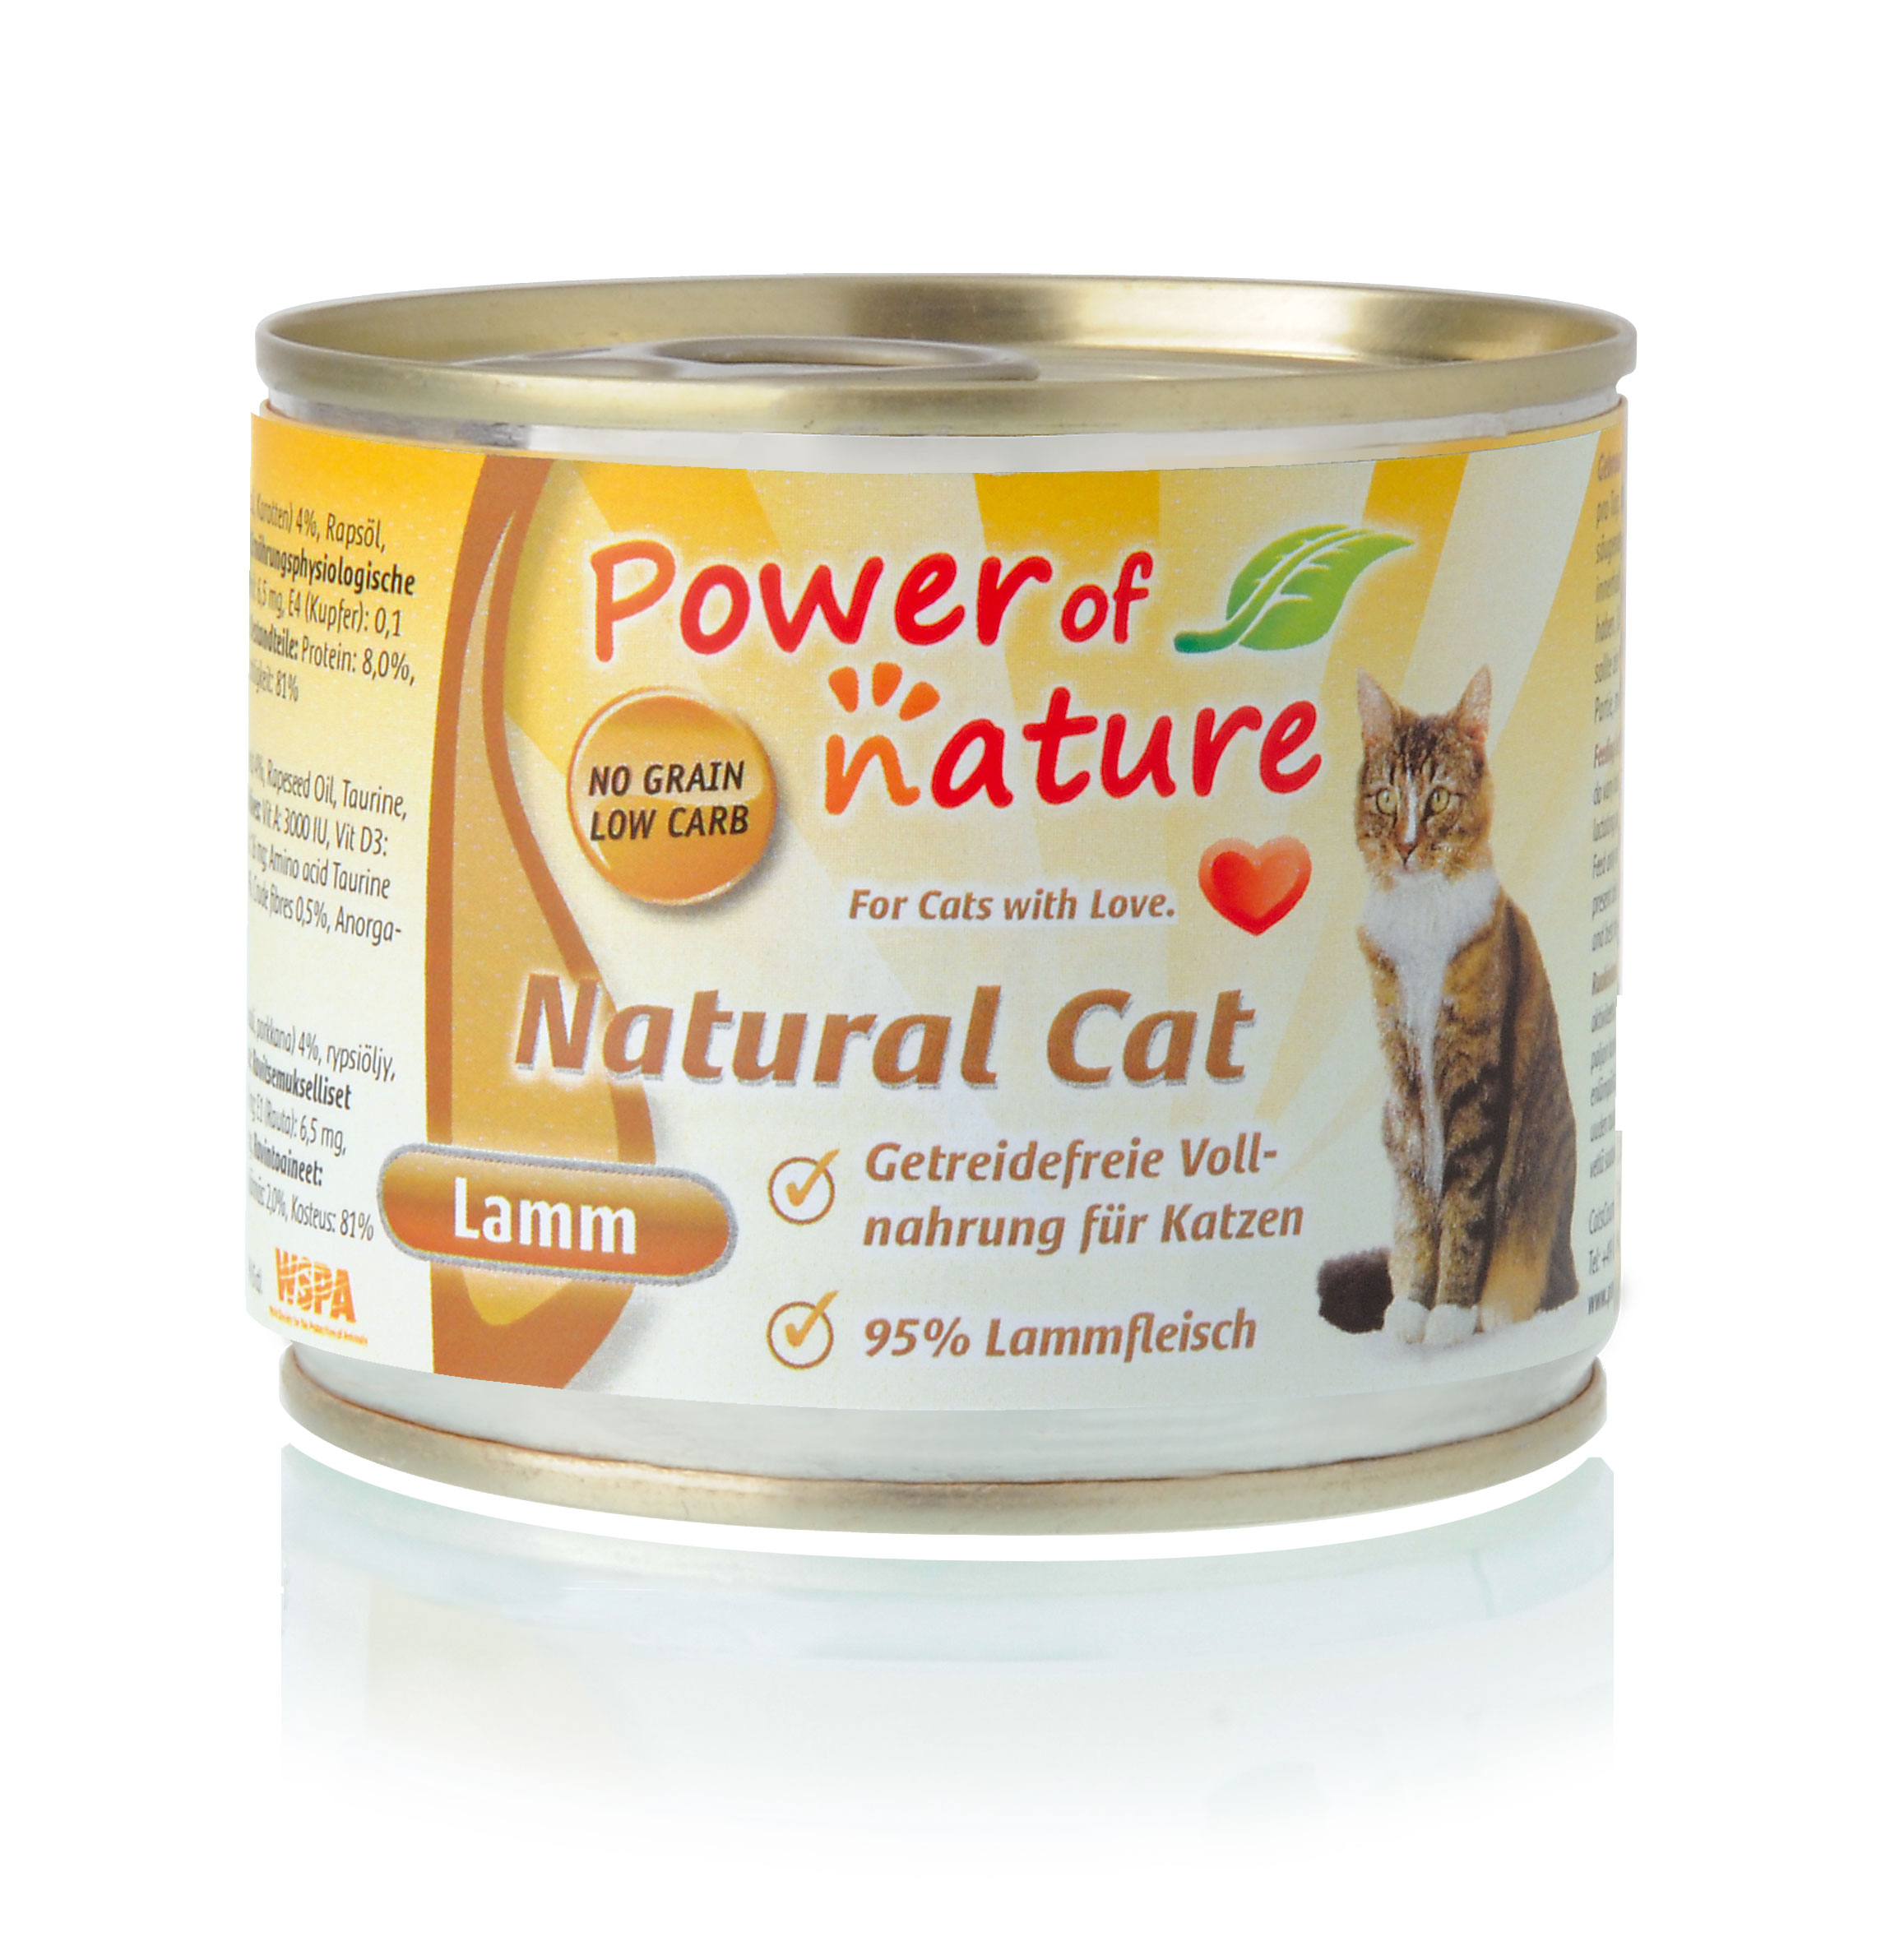 Power of Nature Natural Cat Dose Lamm 24 x 200g